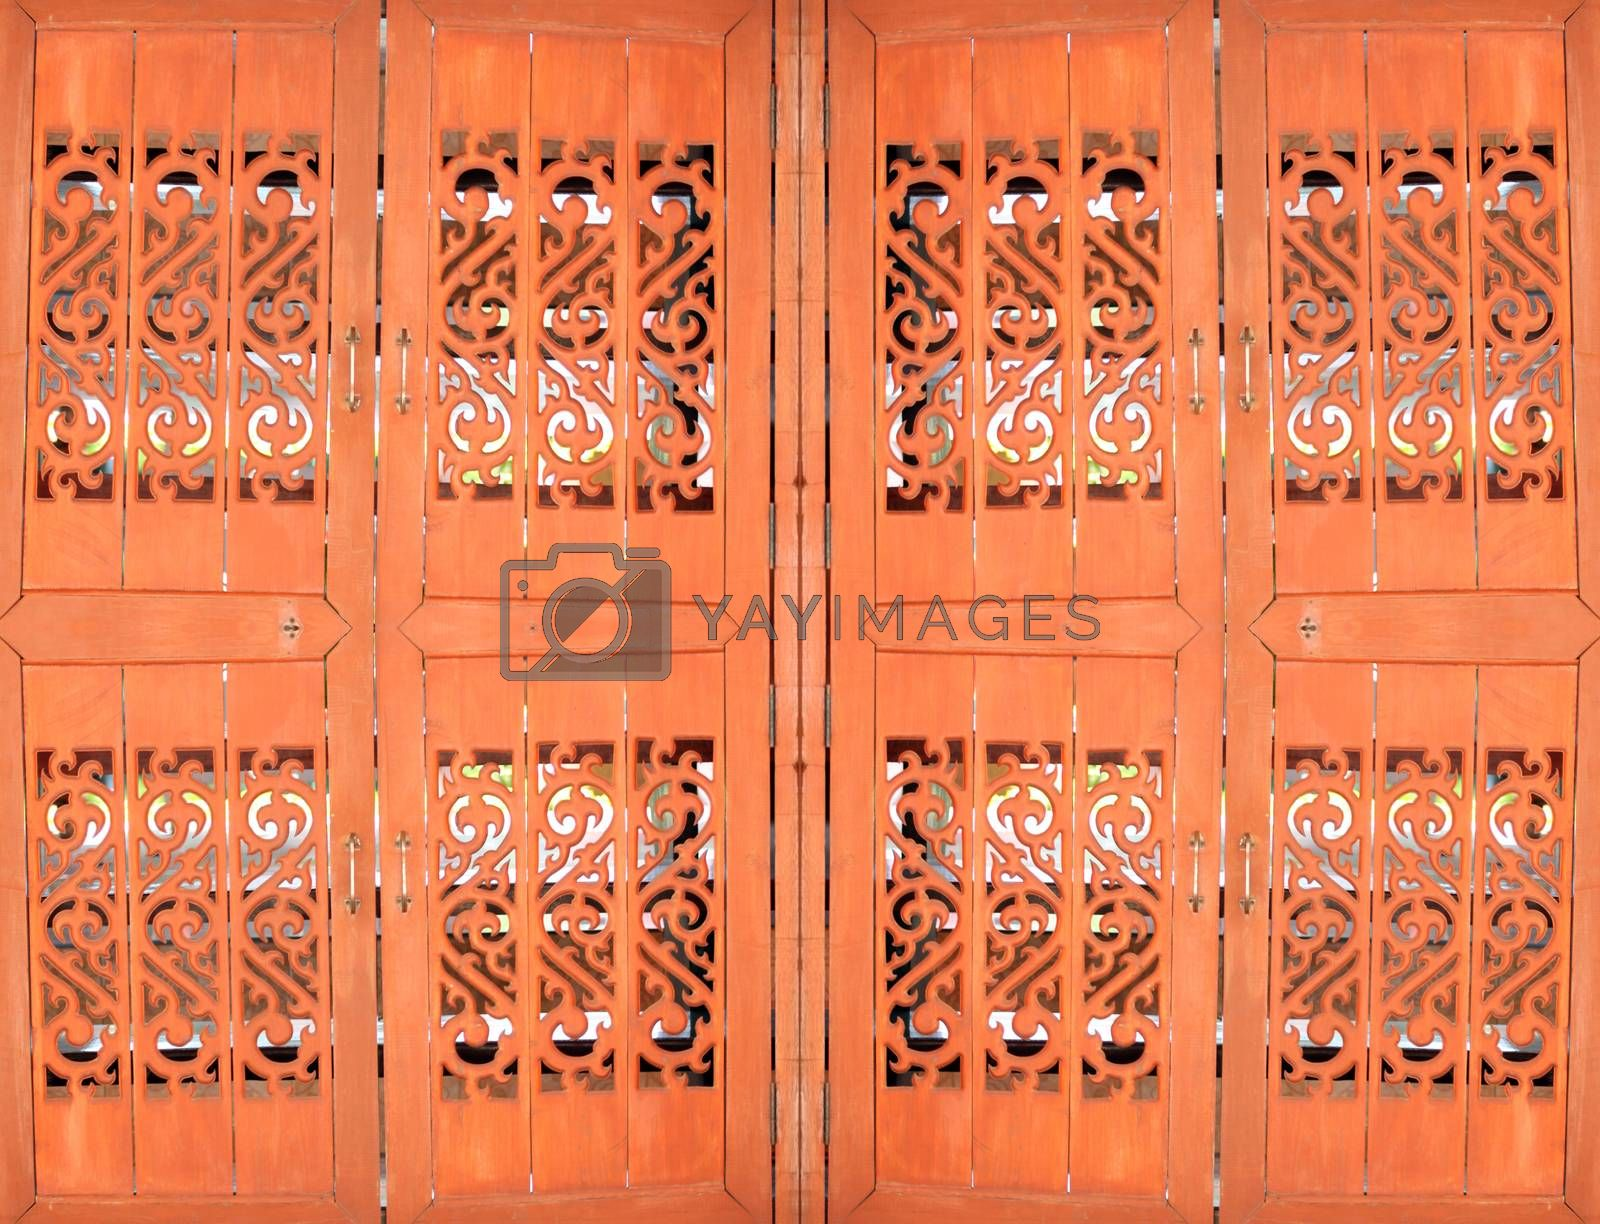 Patterns on wooden doors for the art background.